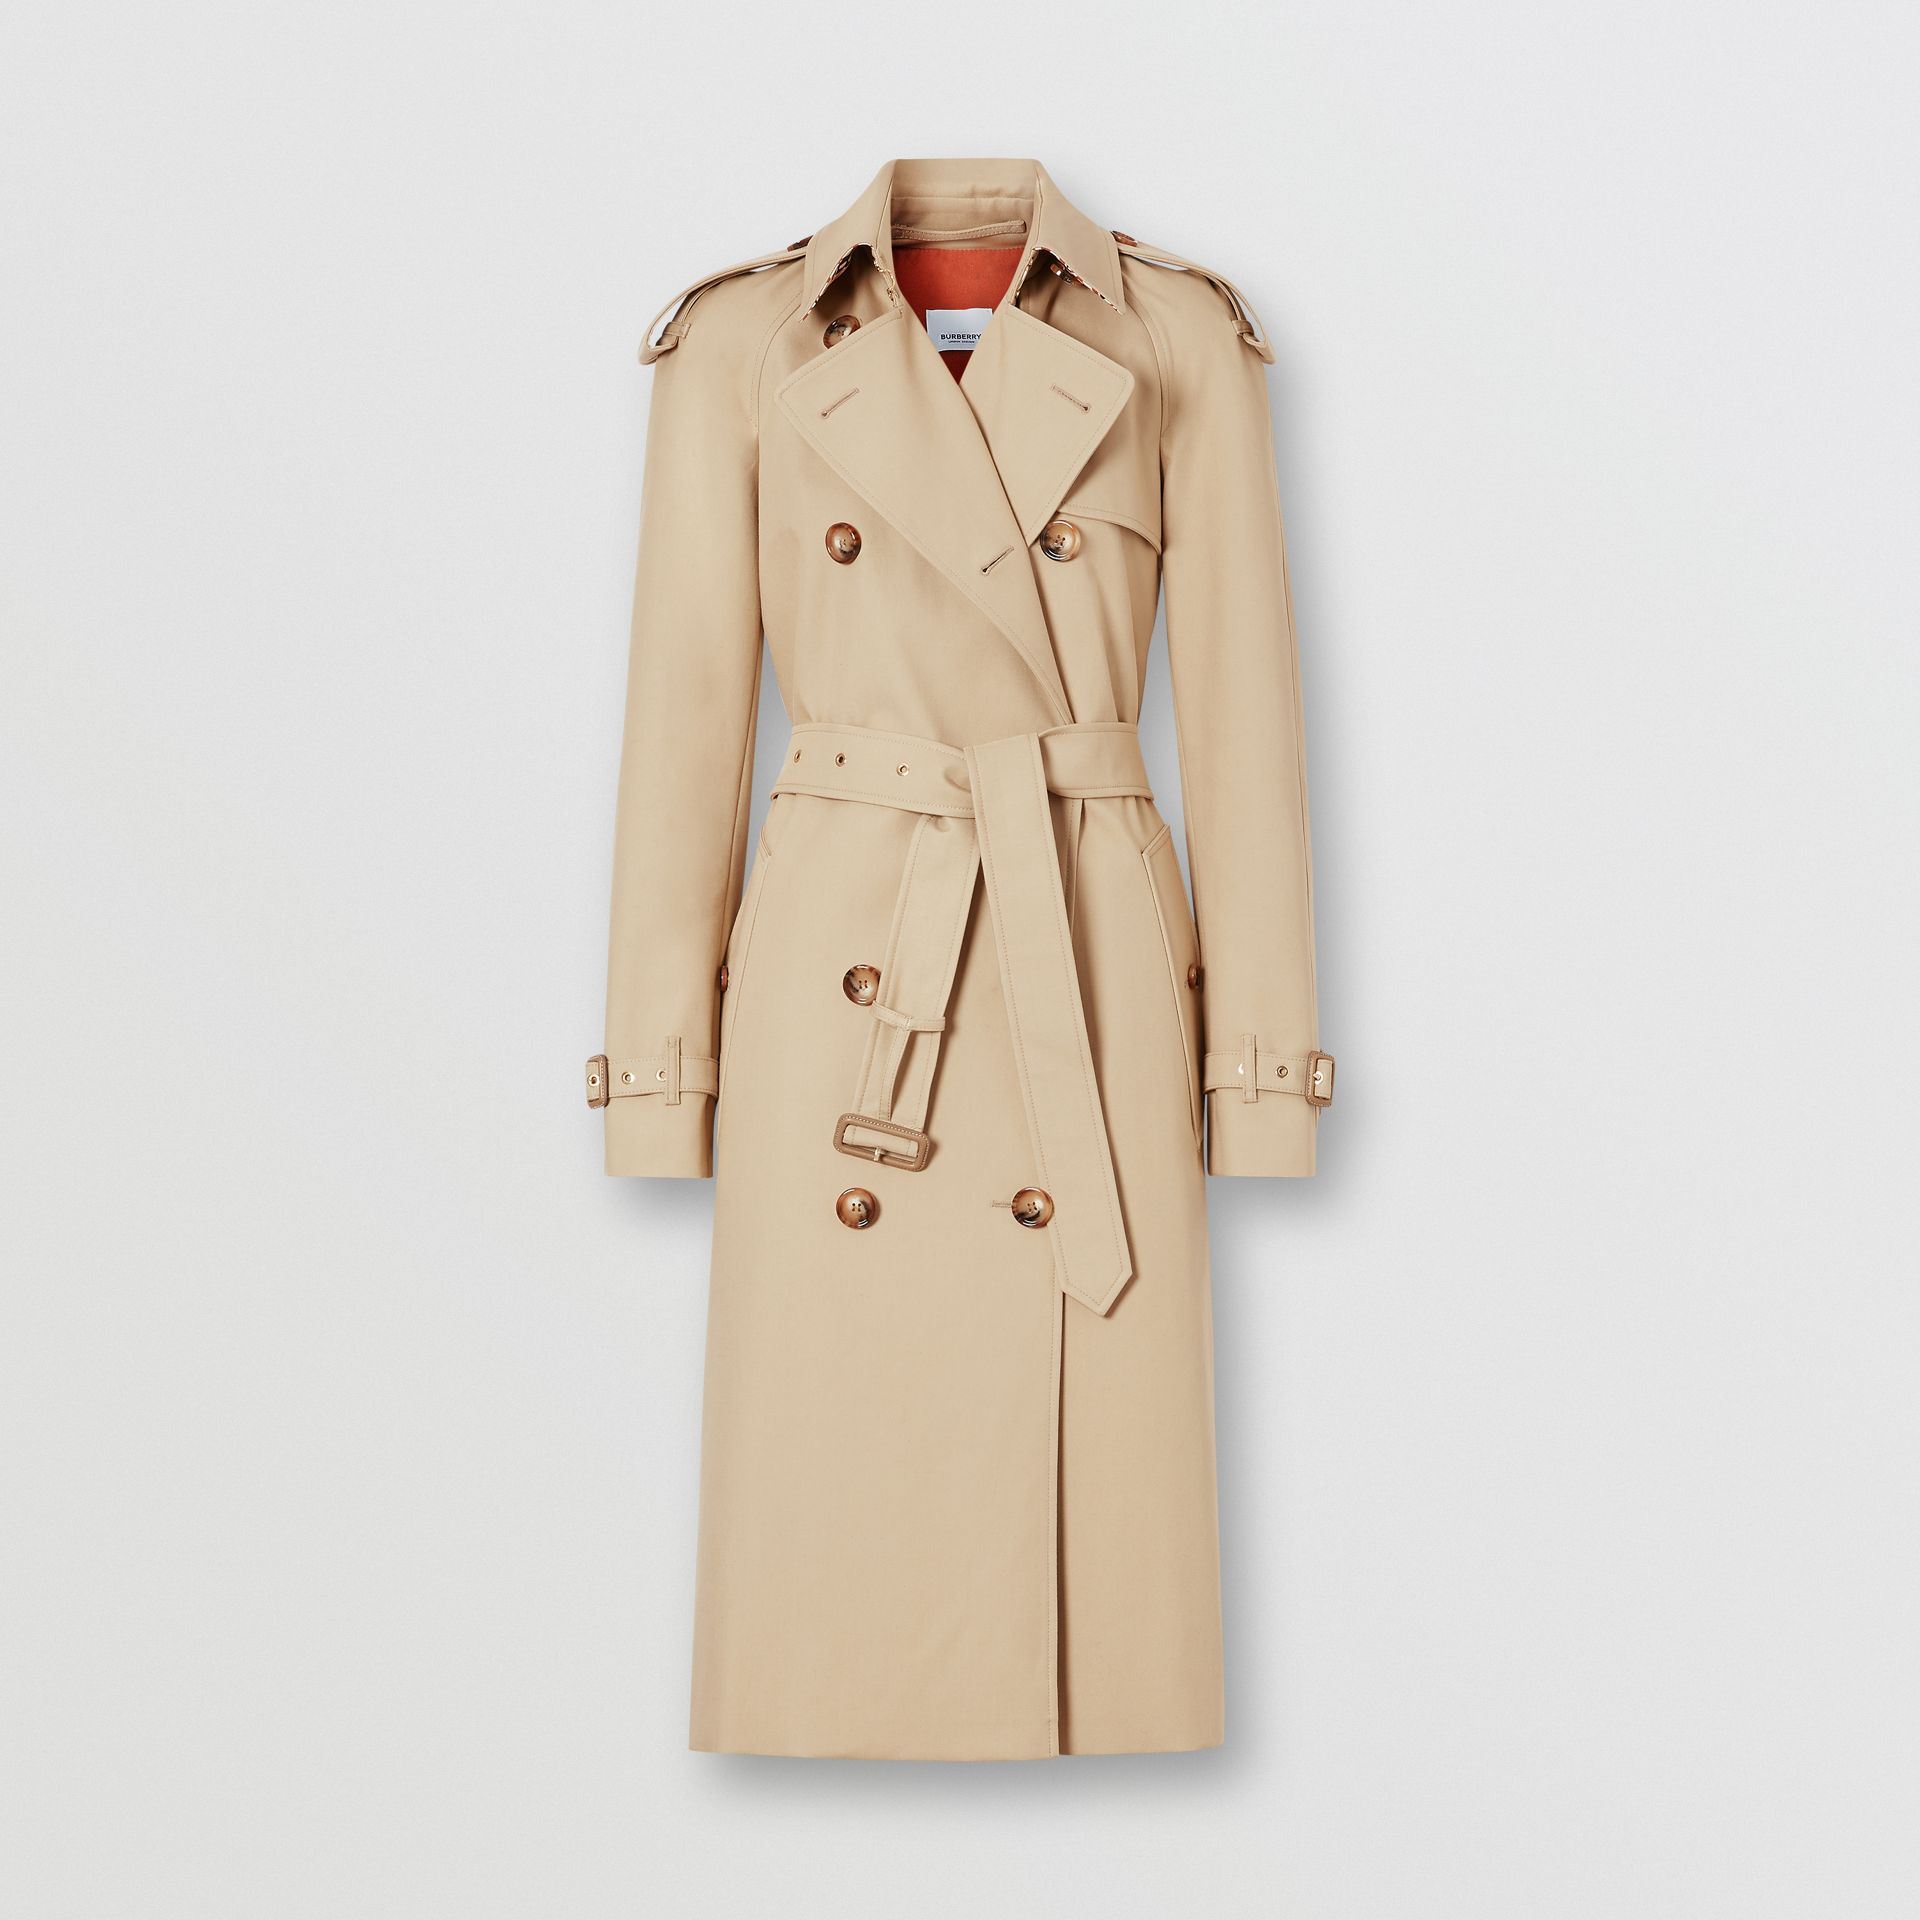 Archive Print-lined Cotton Gabardine Trench Coat in Honey - Women | Burberry - gallery image 3